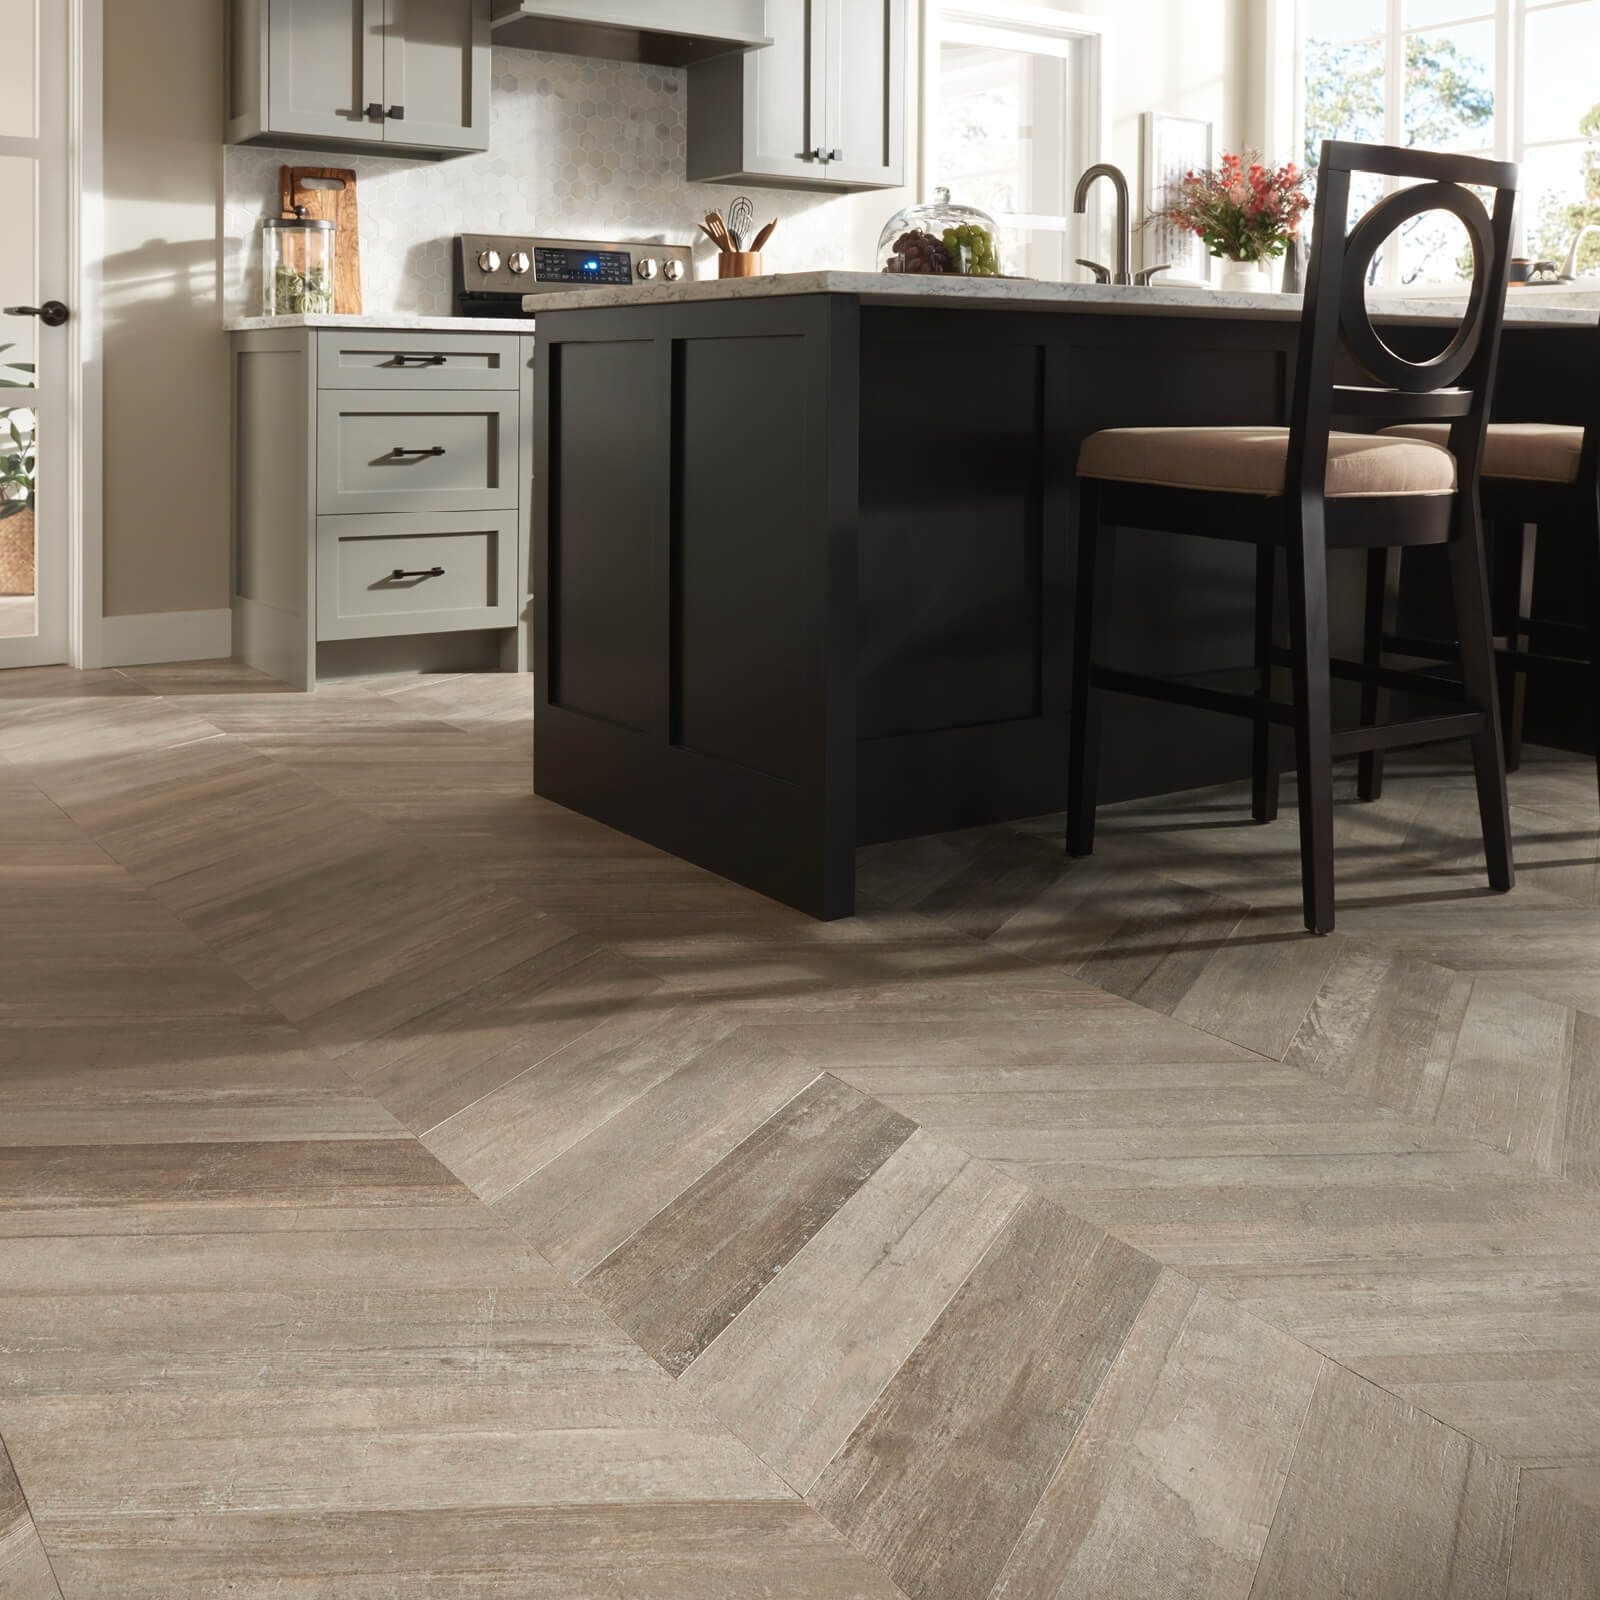 Glee chevron tile in kitchen | Great Lakes Carpet & Tile